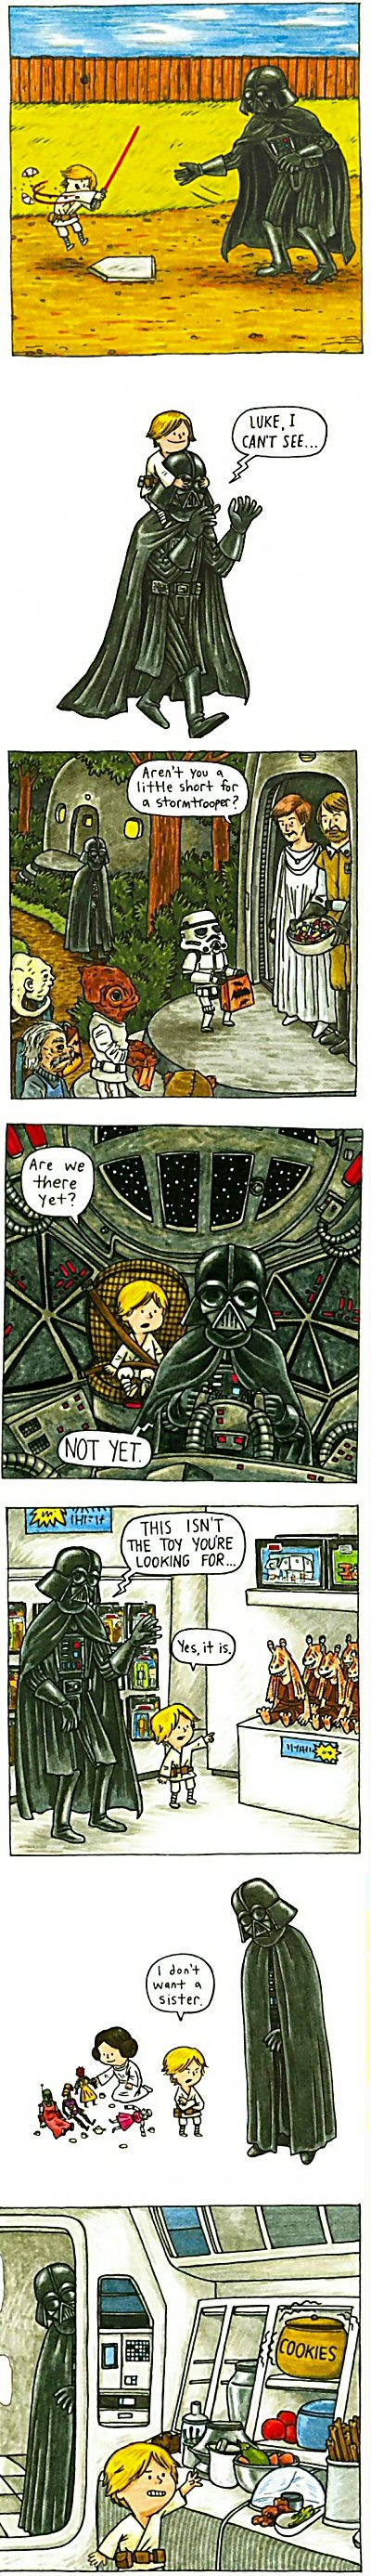 What if Darth Vader had been a good dad?